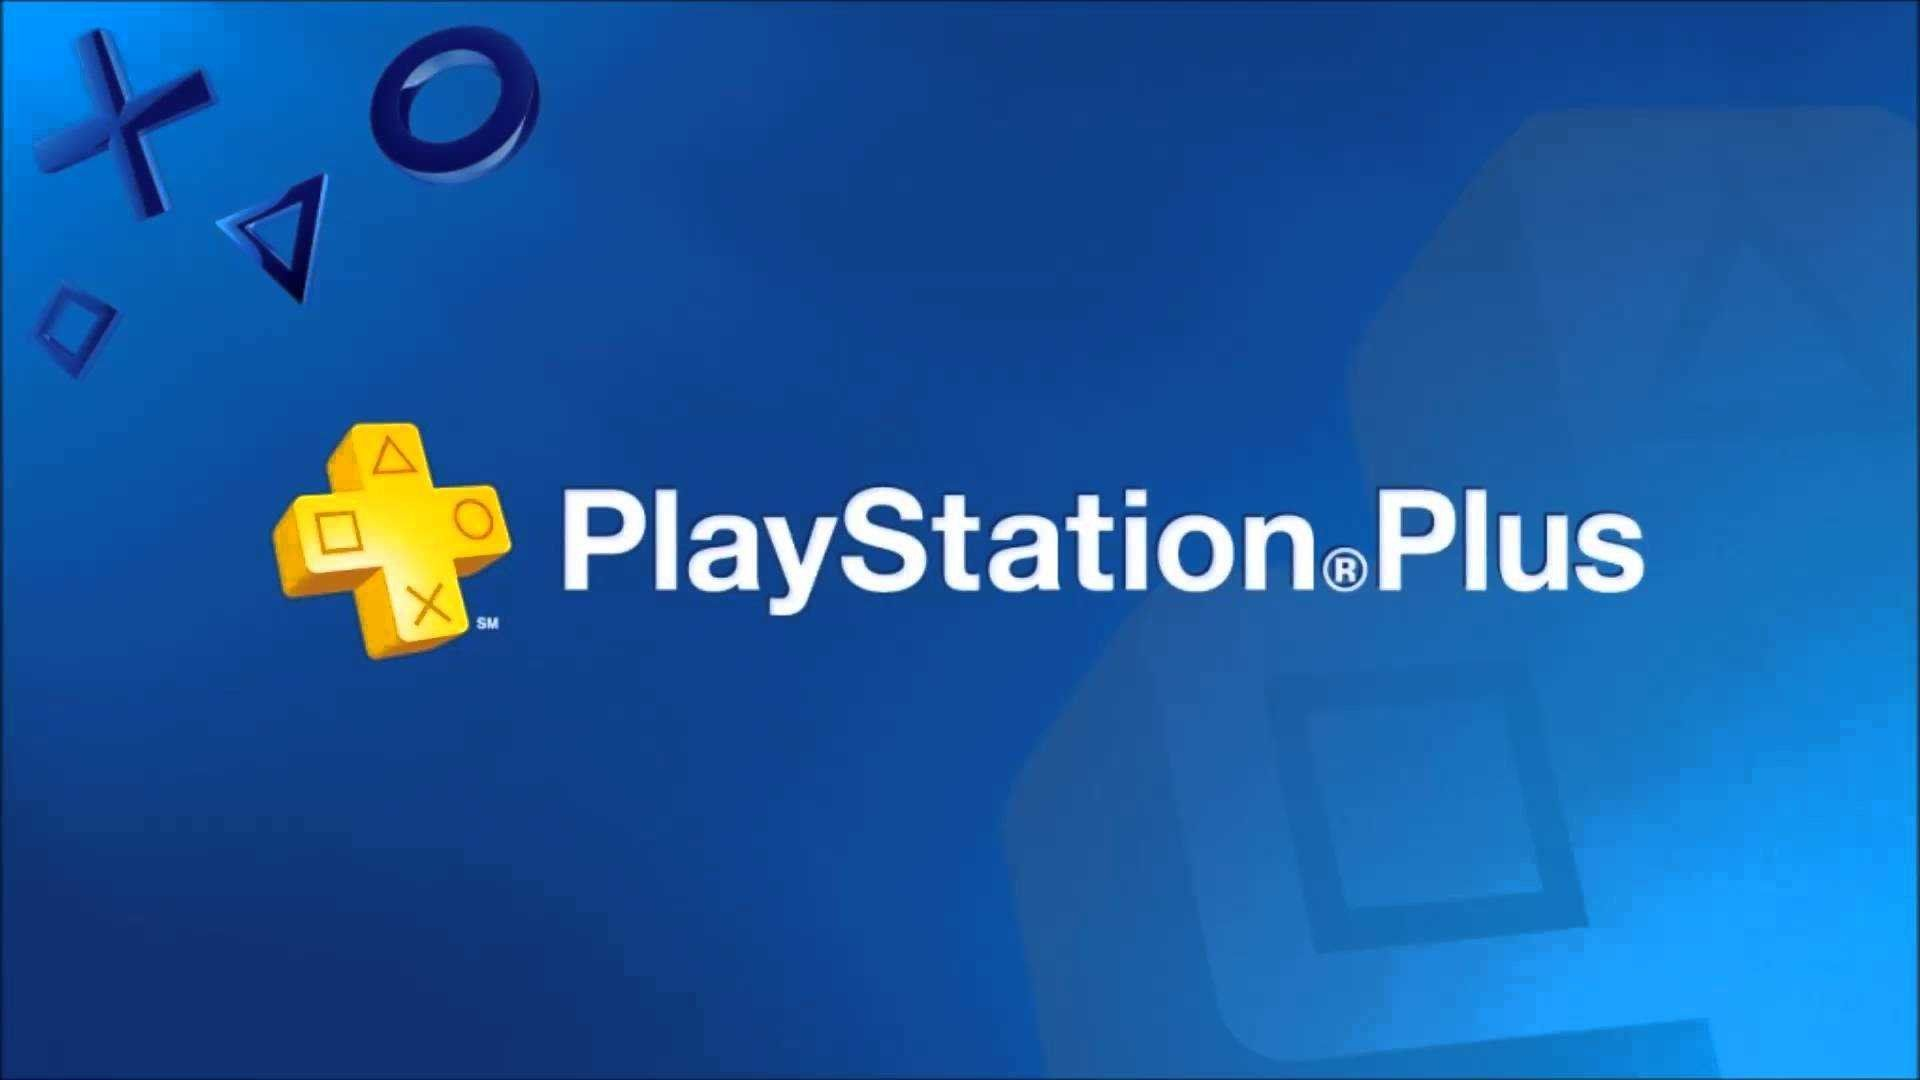 wp6001184-playstation-plus-wallpapers